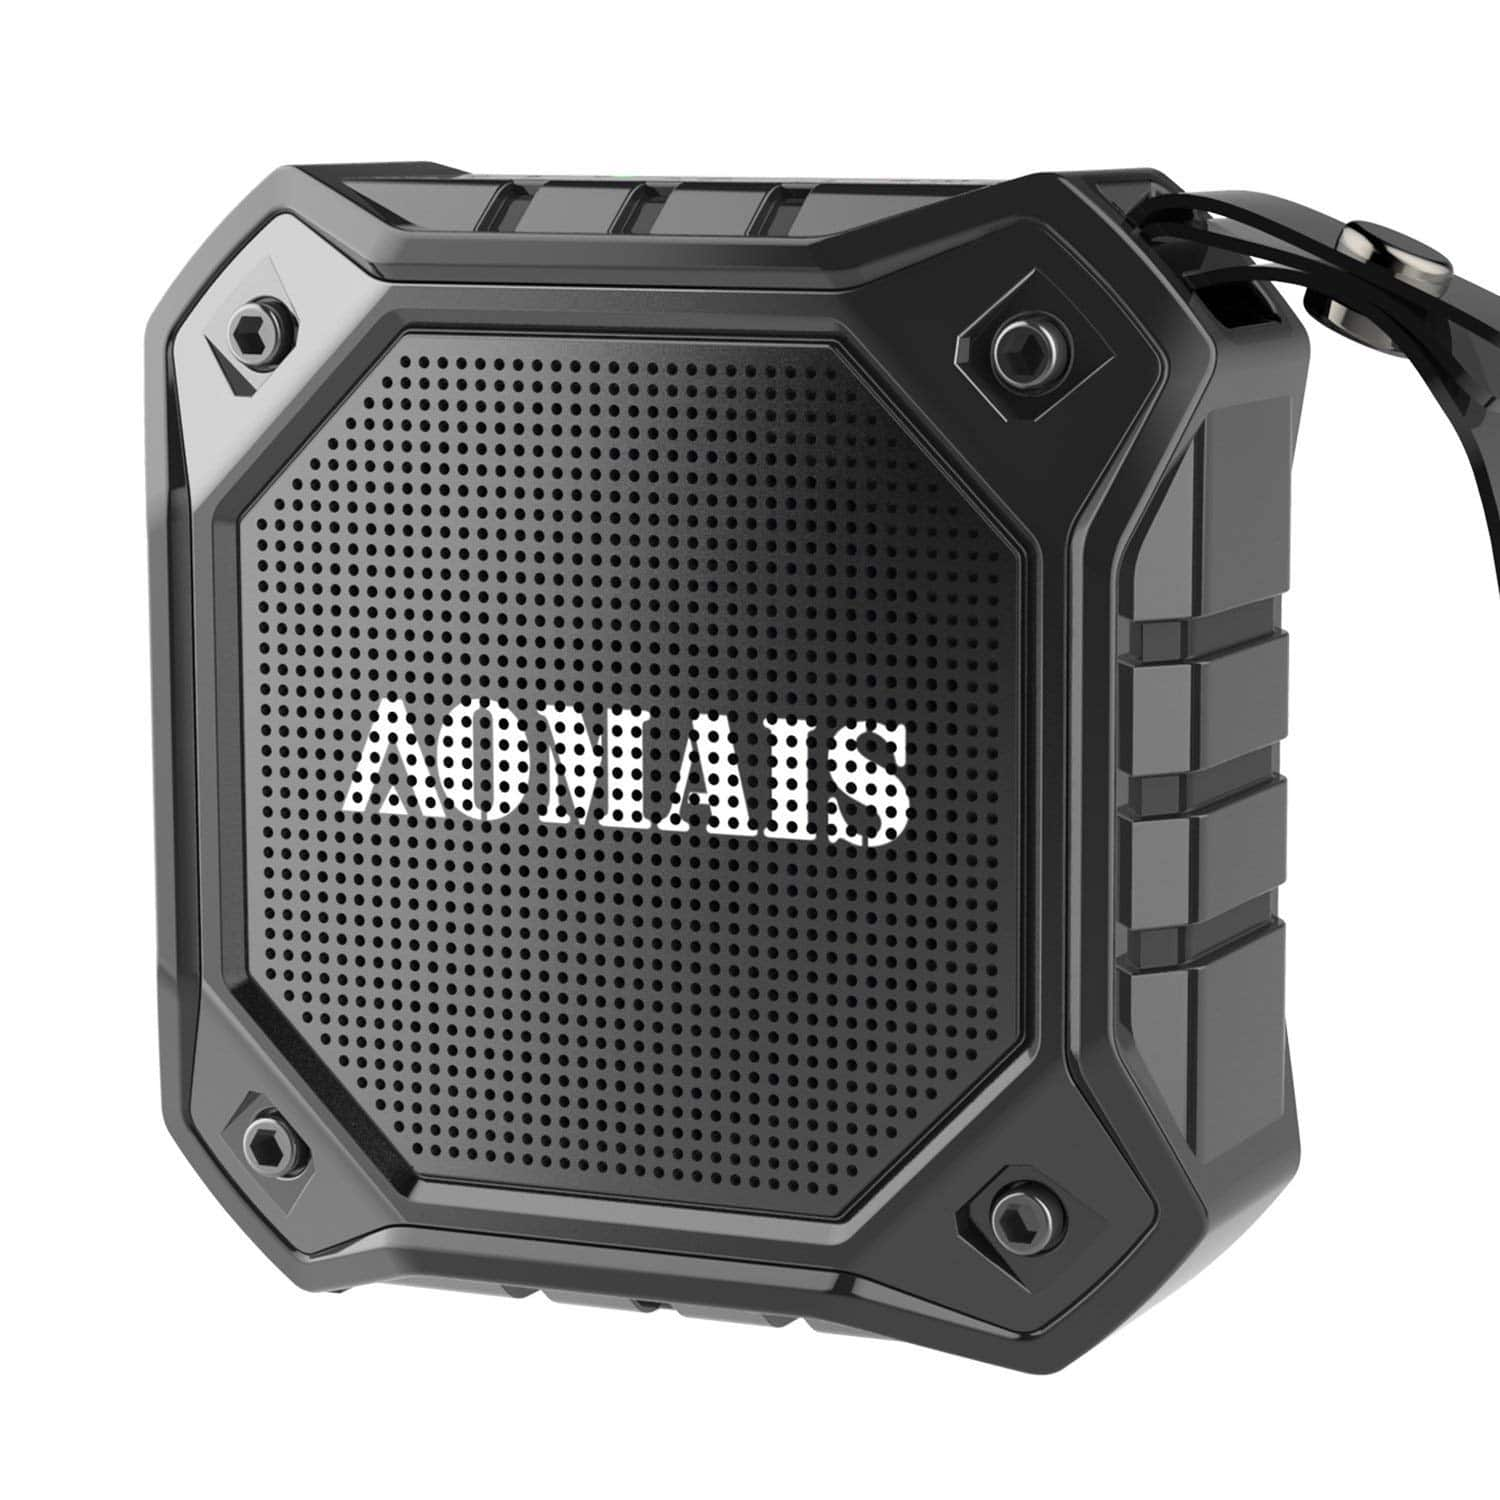 AOMAIS 8W Outdoor Bluetooth Speakers with Waterproof IPX7 & Stereo Pairing - $13.49 + FS